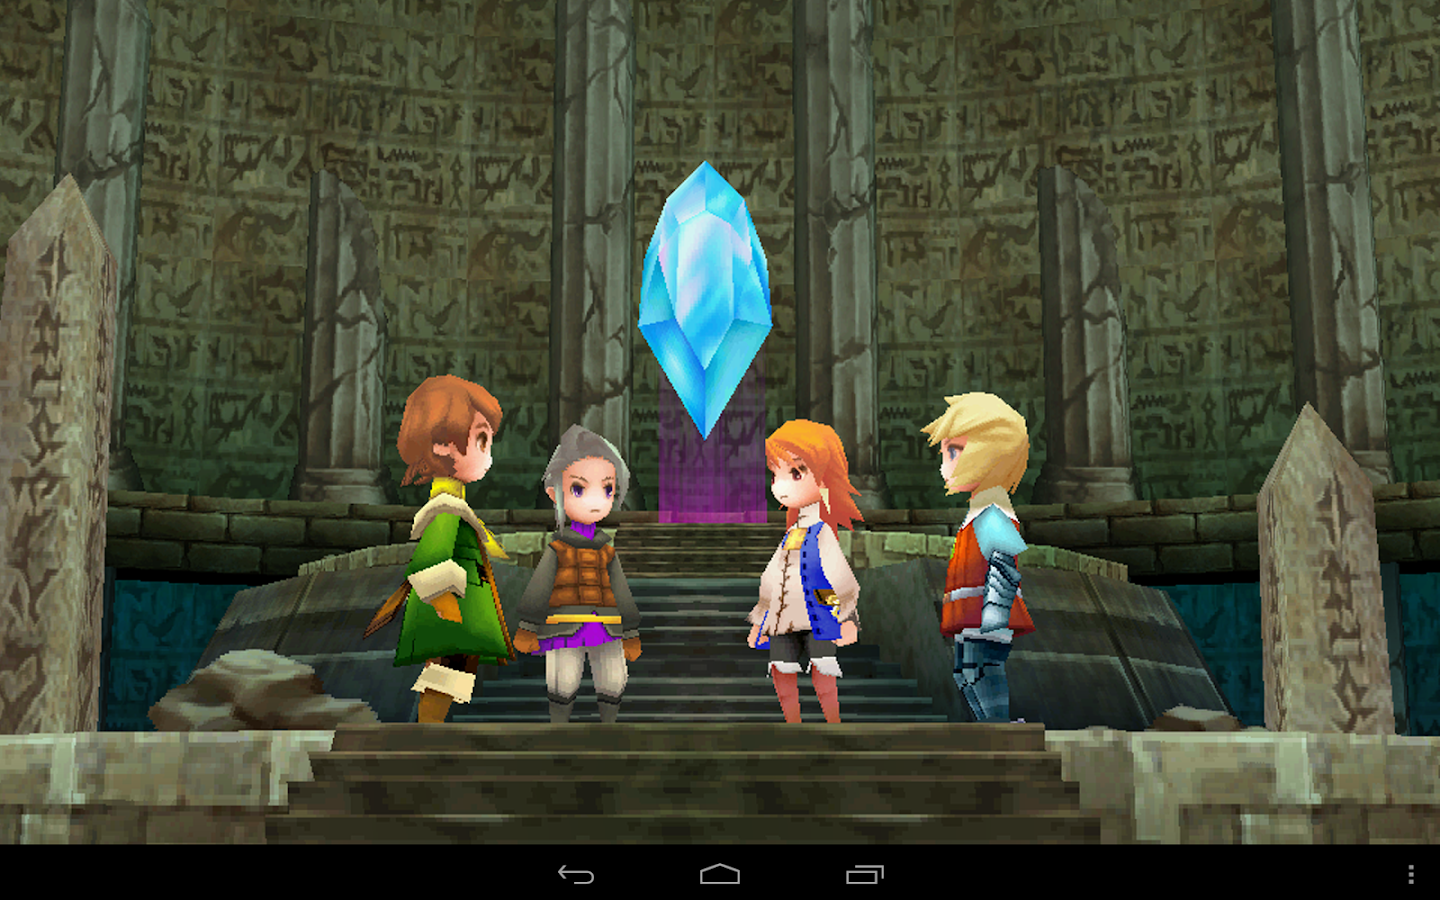 FINAL FANTASY III Screenshot 4